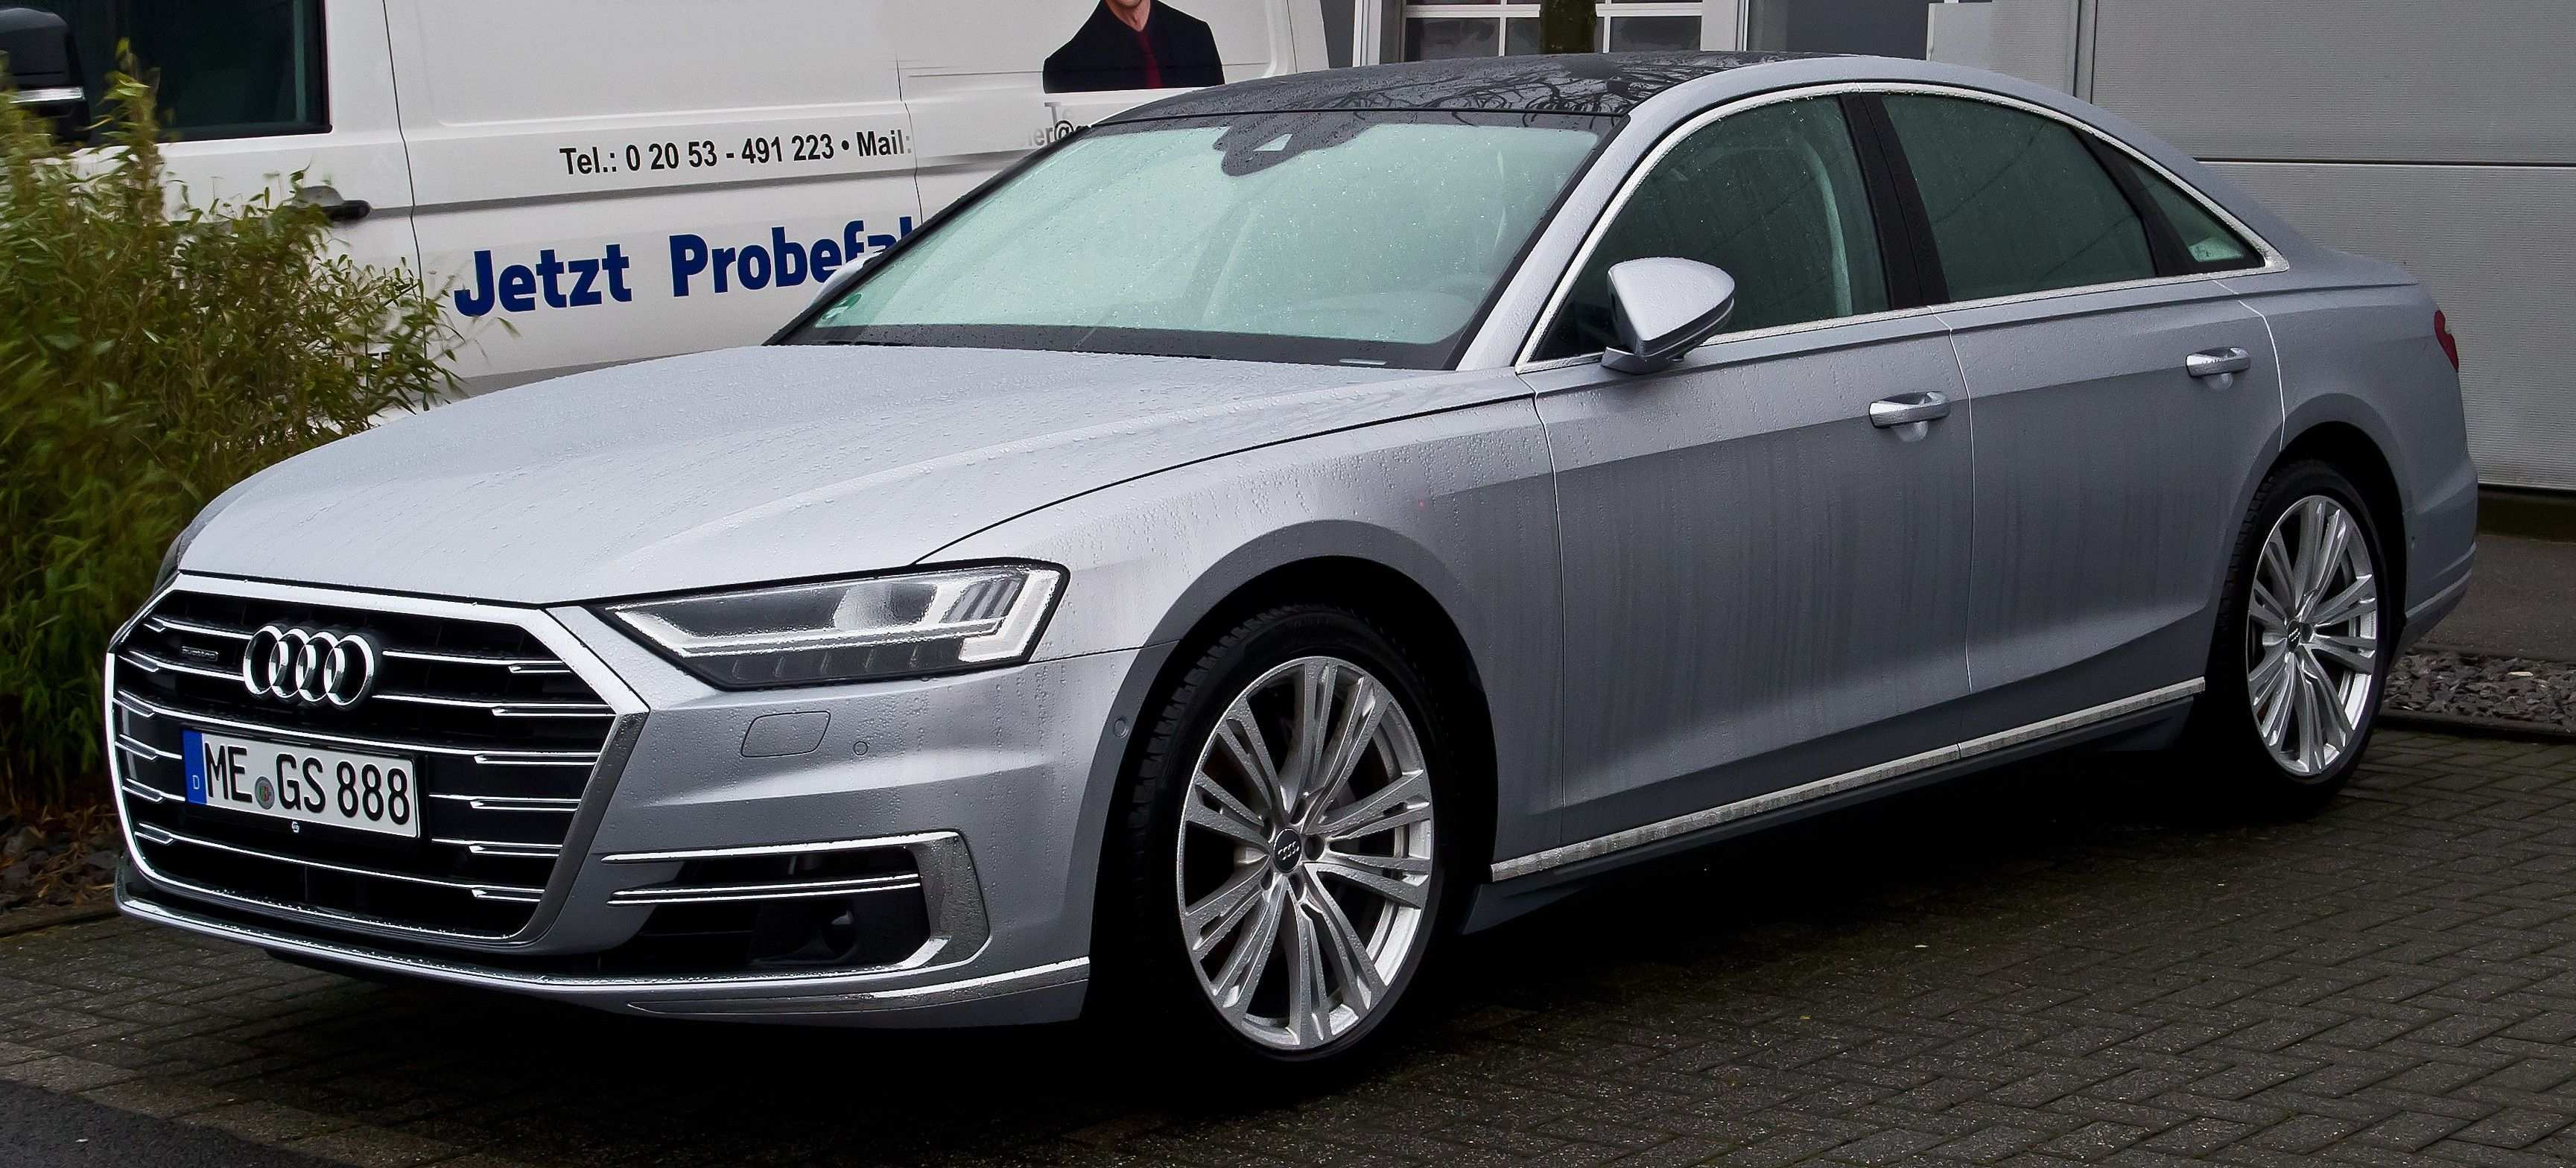 90 All New Audi S5 2020 Overview for Audi S5 2020